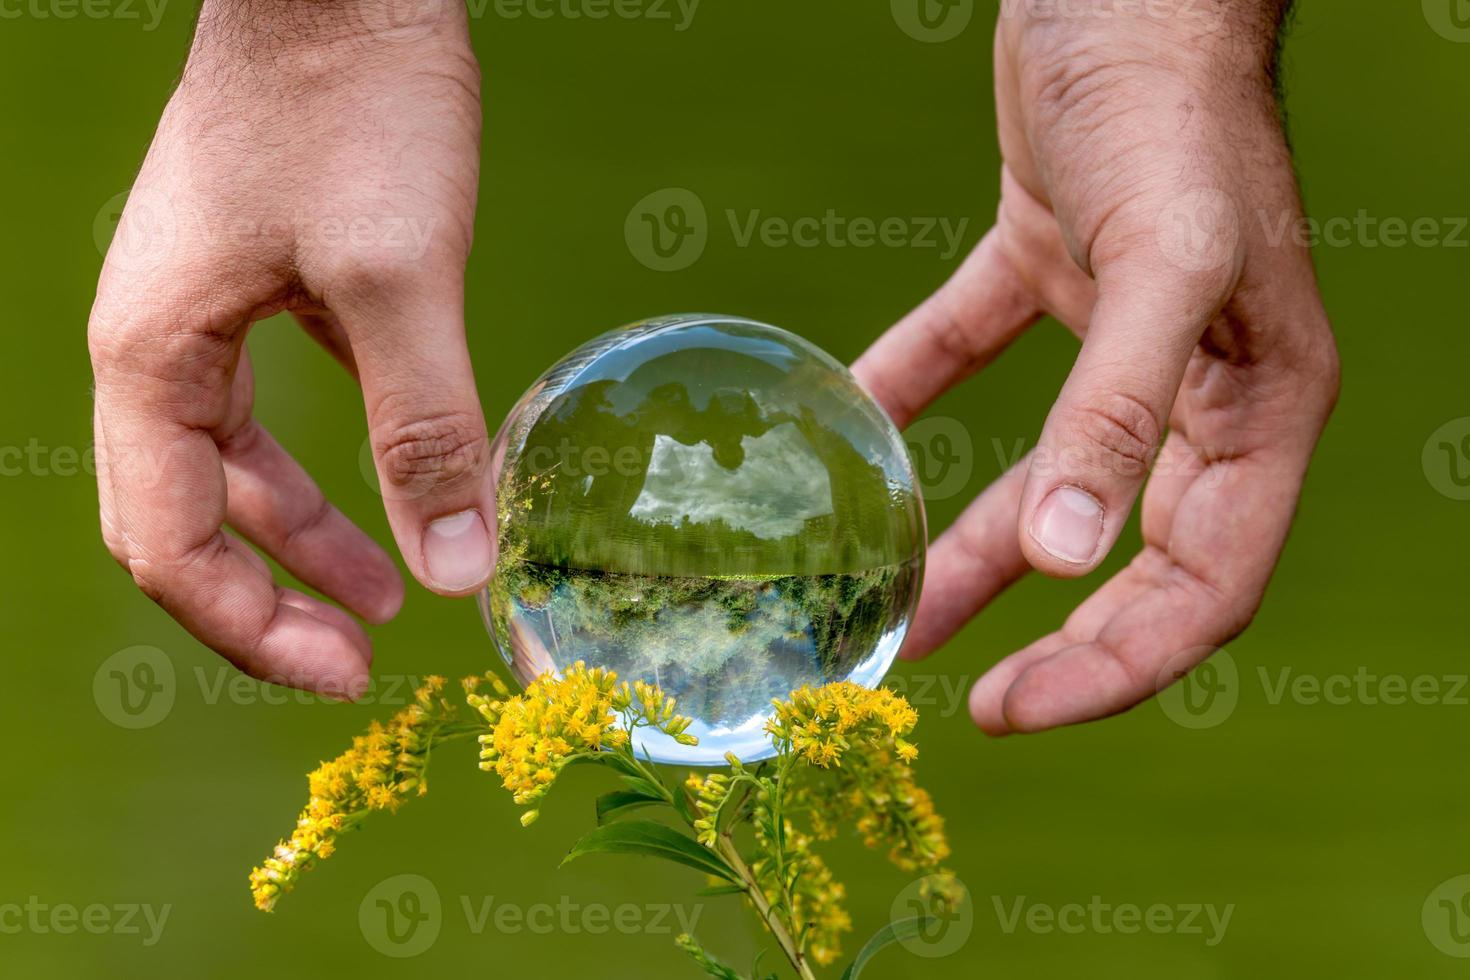 A mans hand reaches for a glass globe with a mirrored lake trees and sky against a green background photo